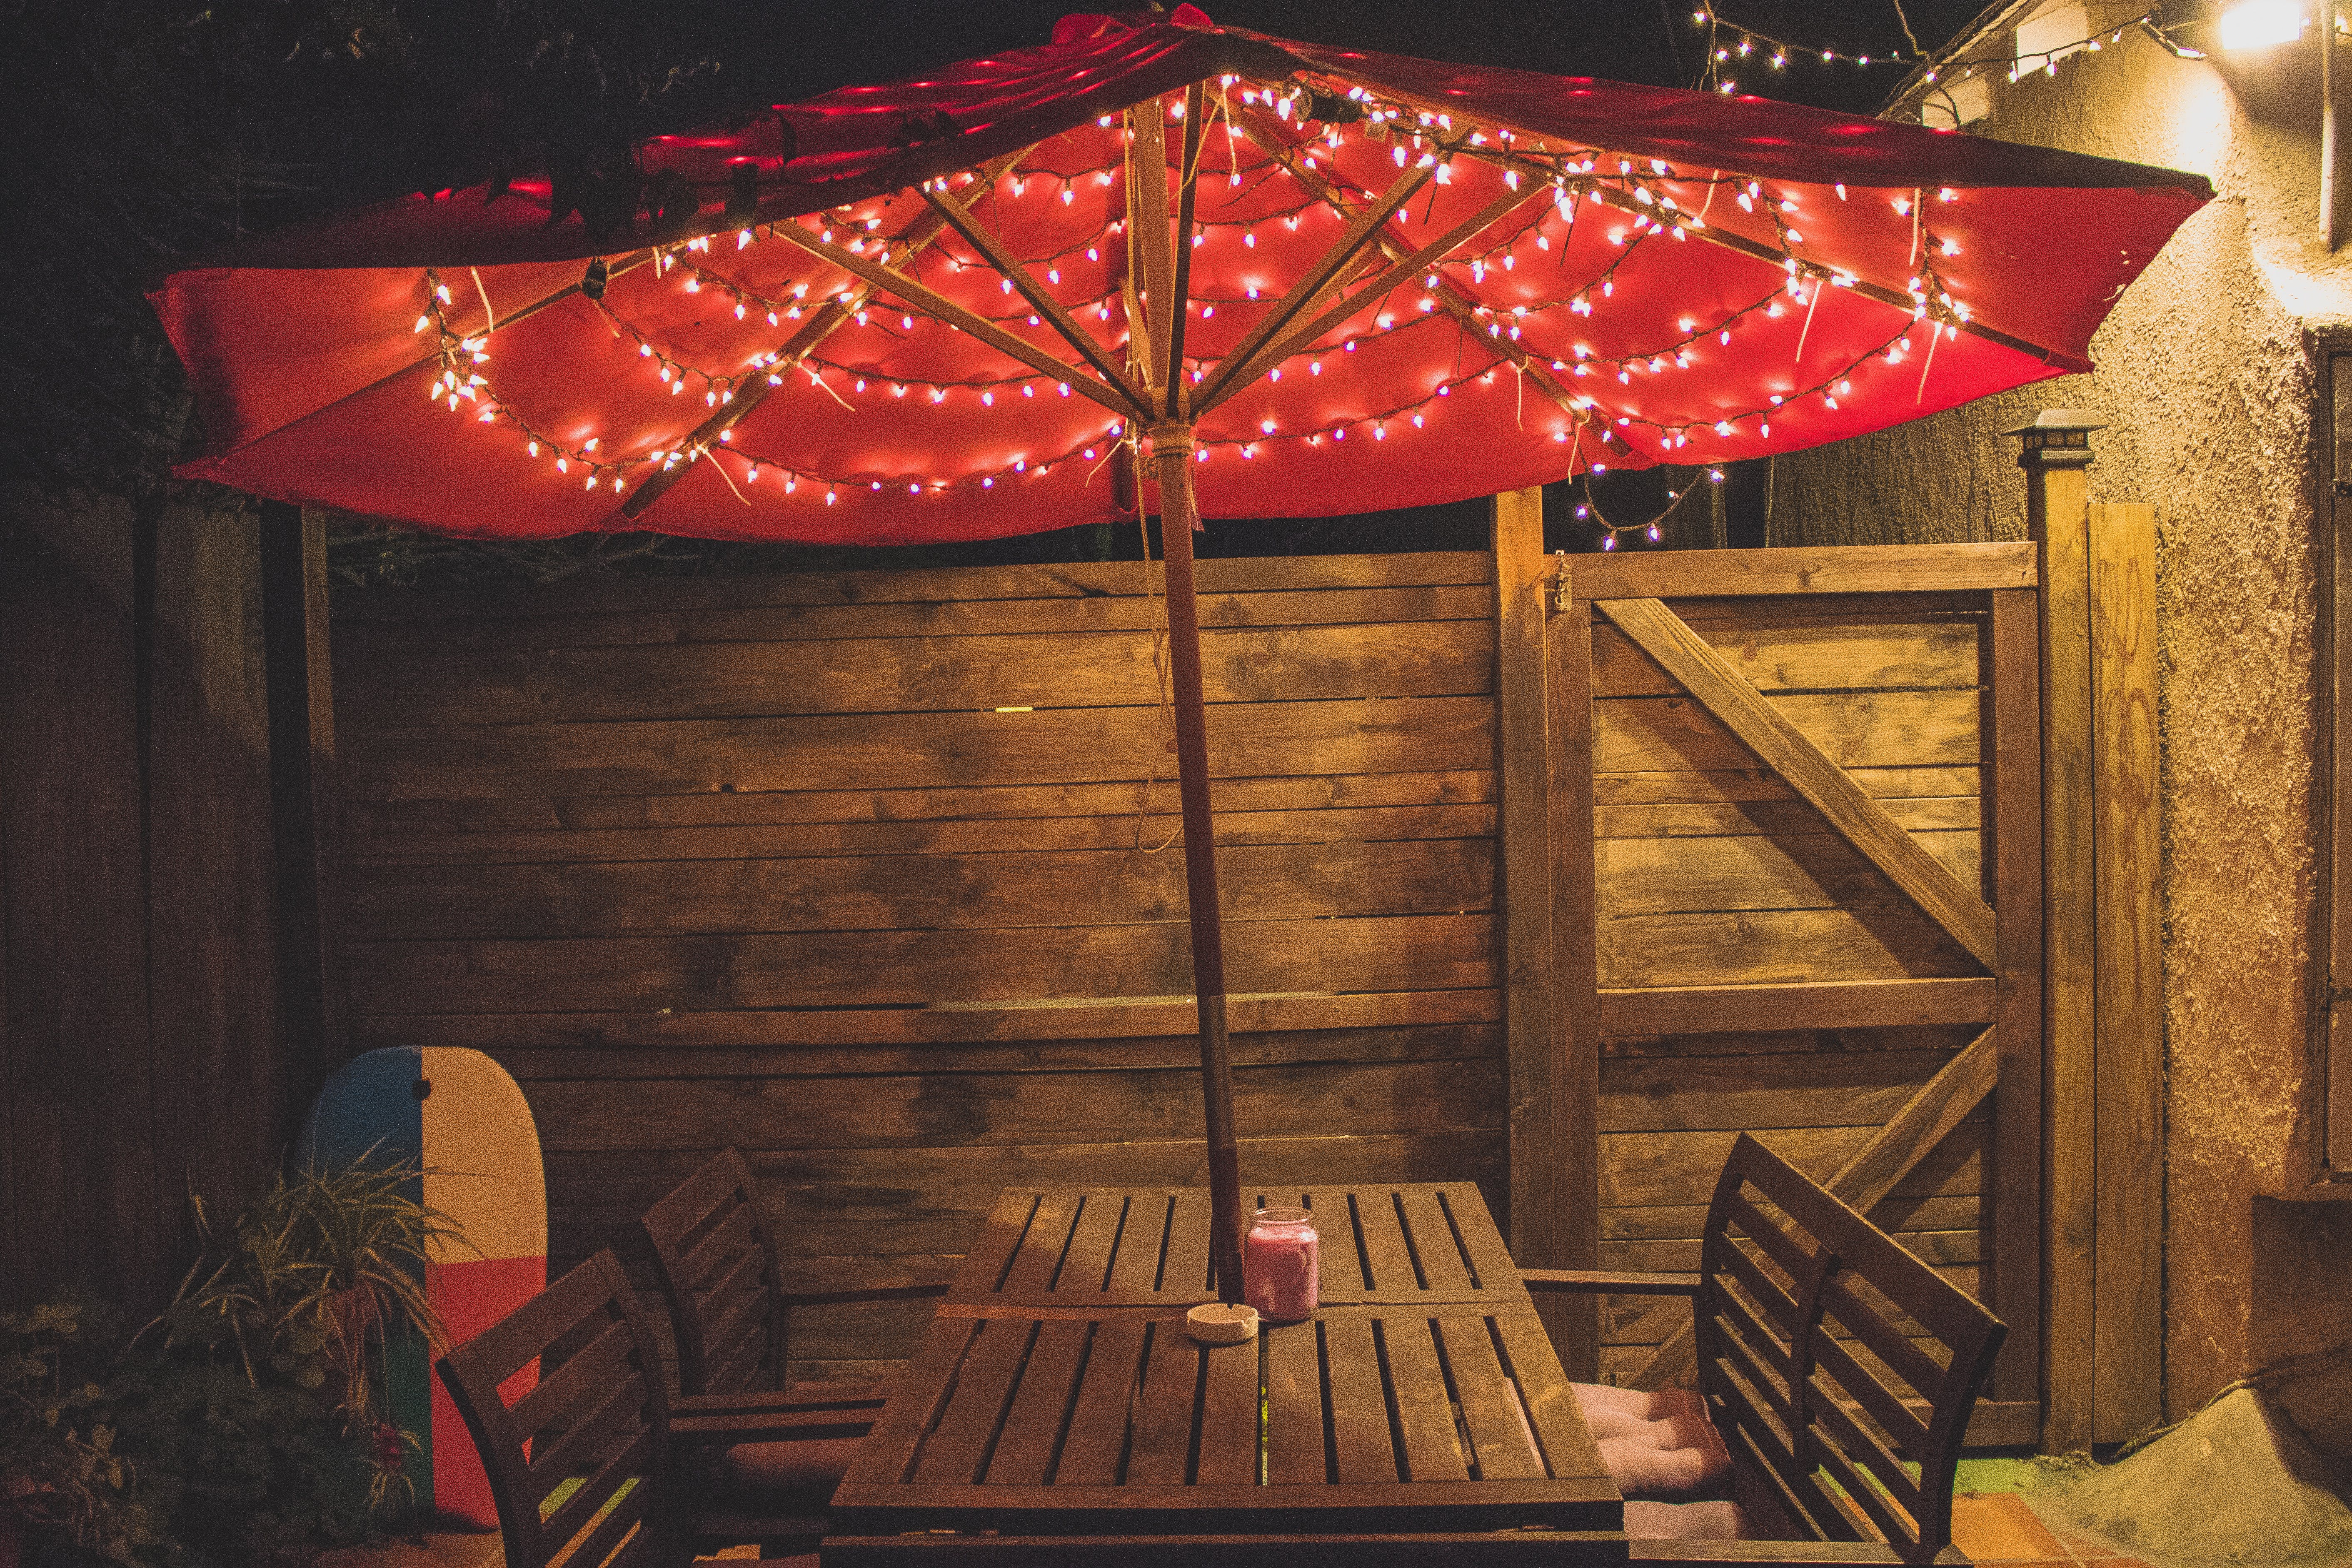 Photography of Red Patio Table With String Lights